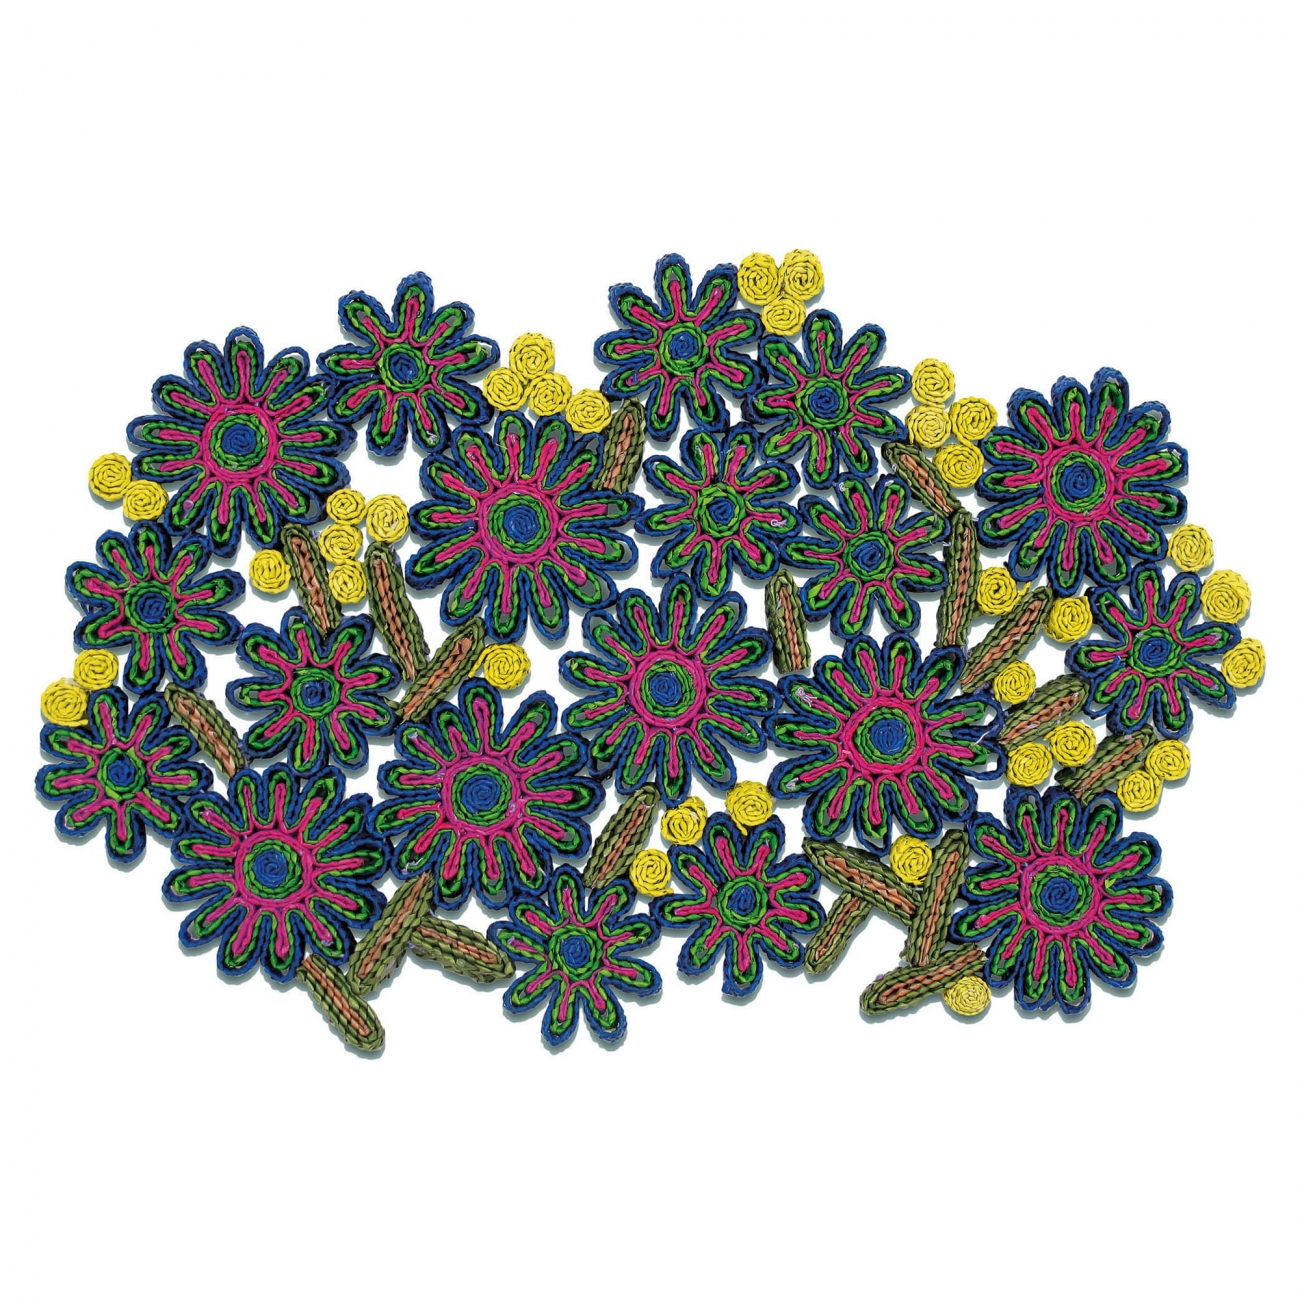 SELETTI FLORIGRAPHIE PASSIFLORA TABLE MAT